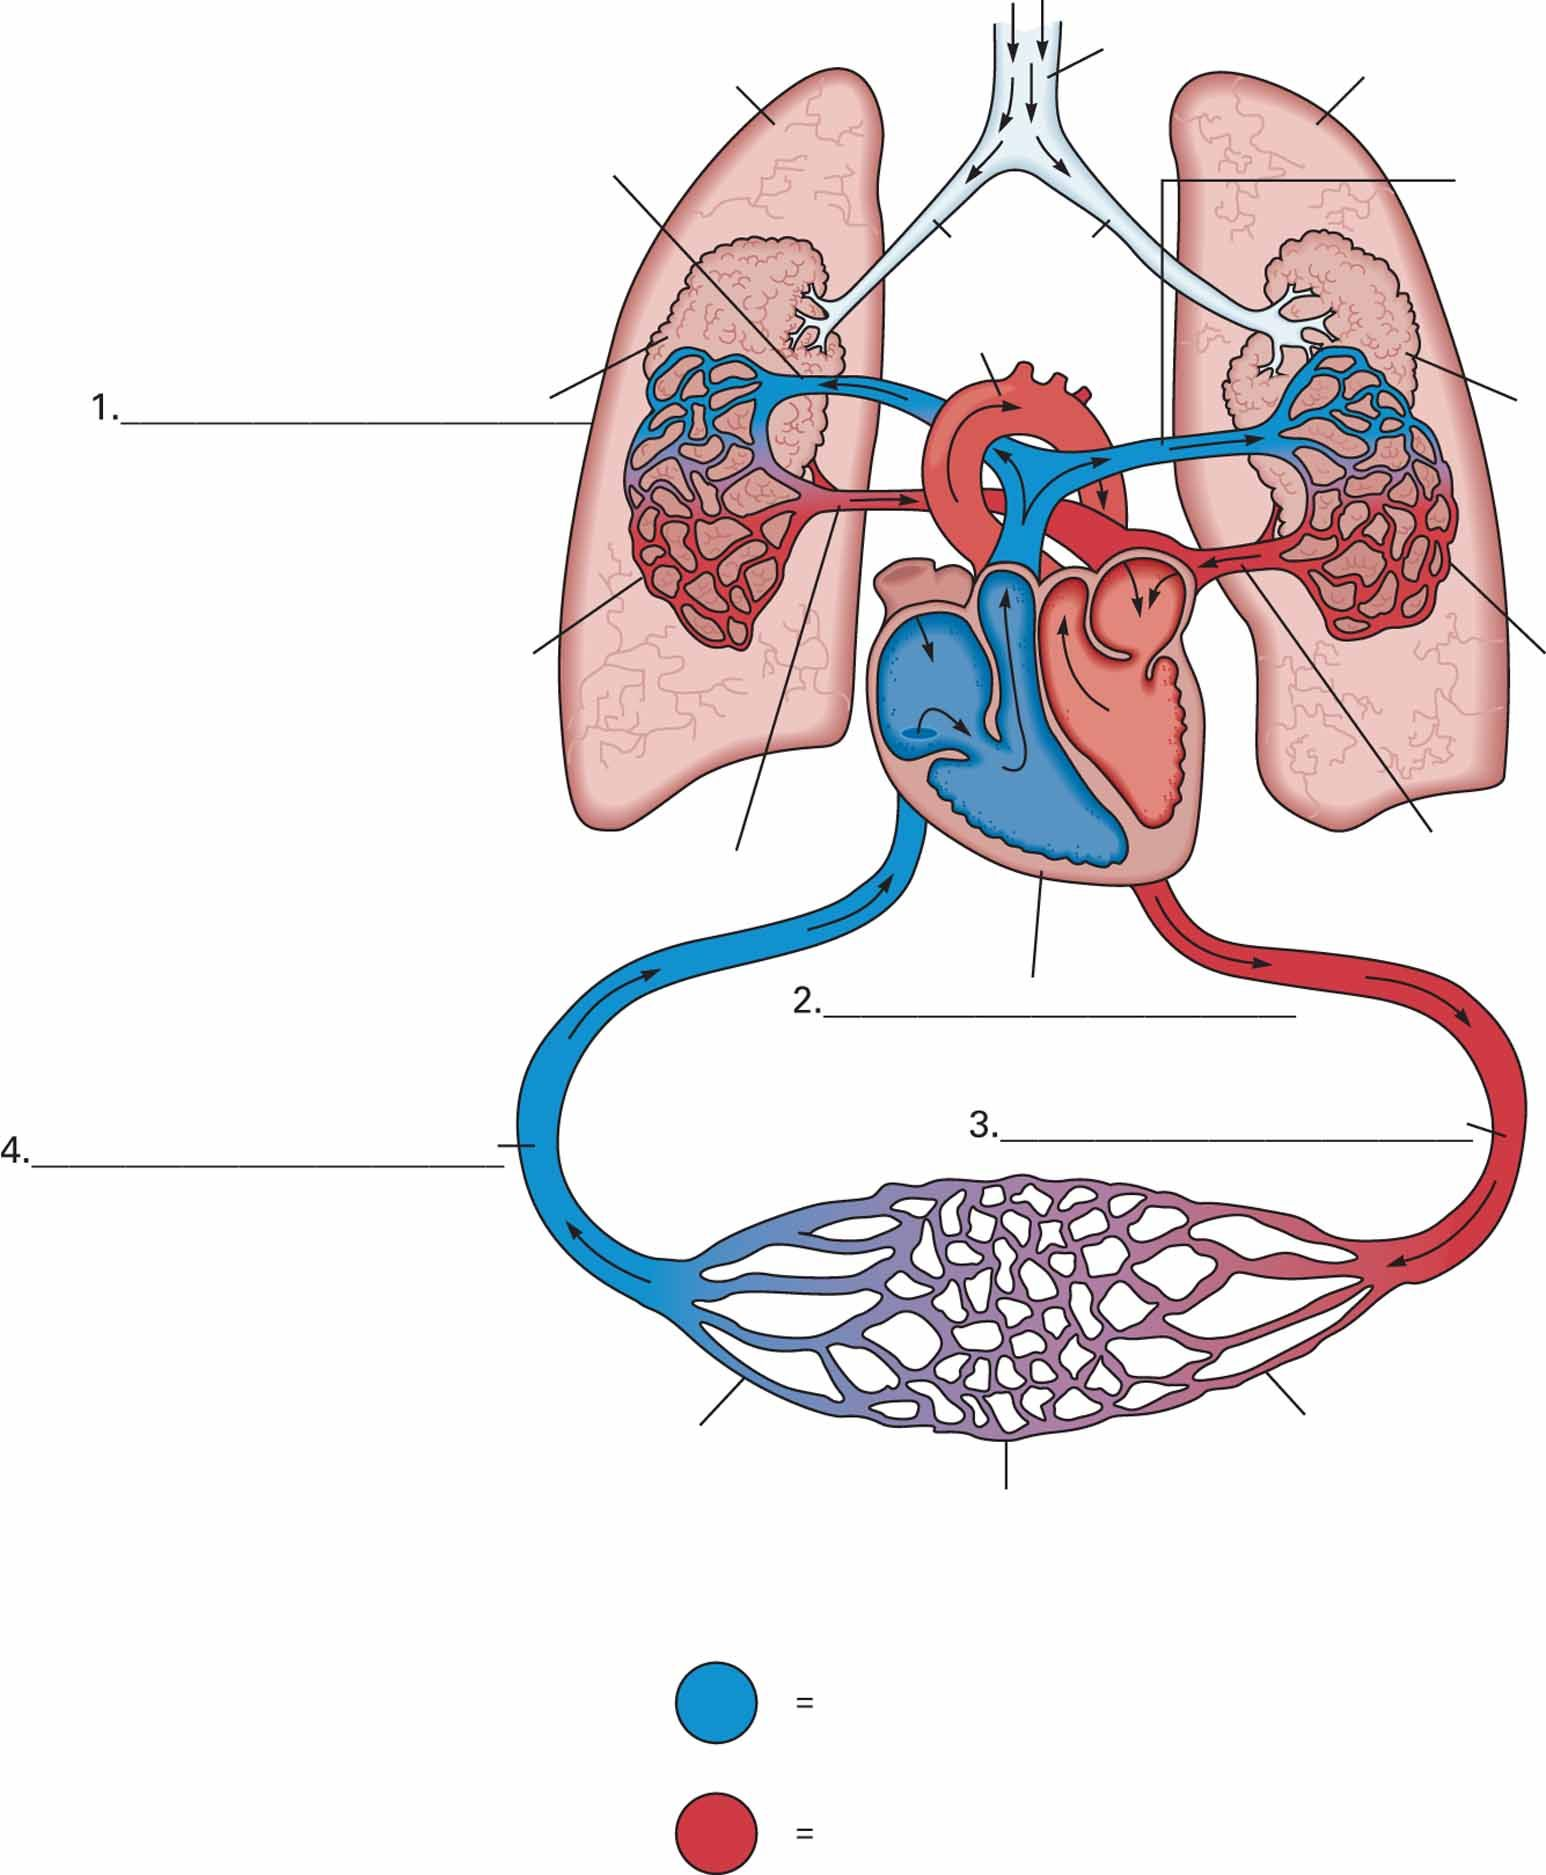 Diagram Of Heart Arteries Veins Arterioles Venules And Blood Circulation Flow The Red